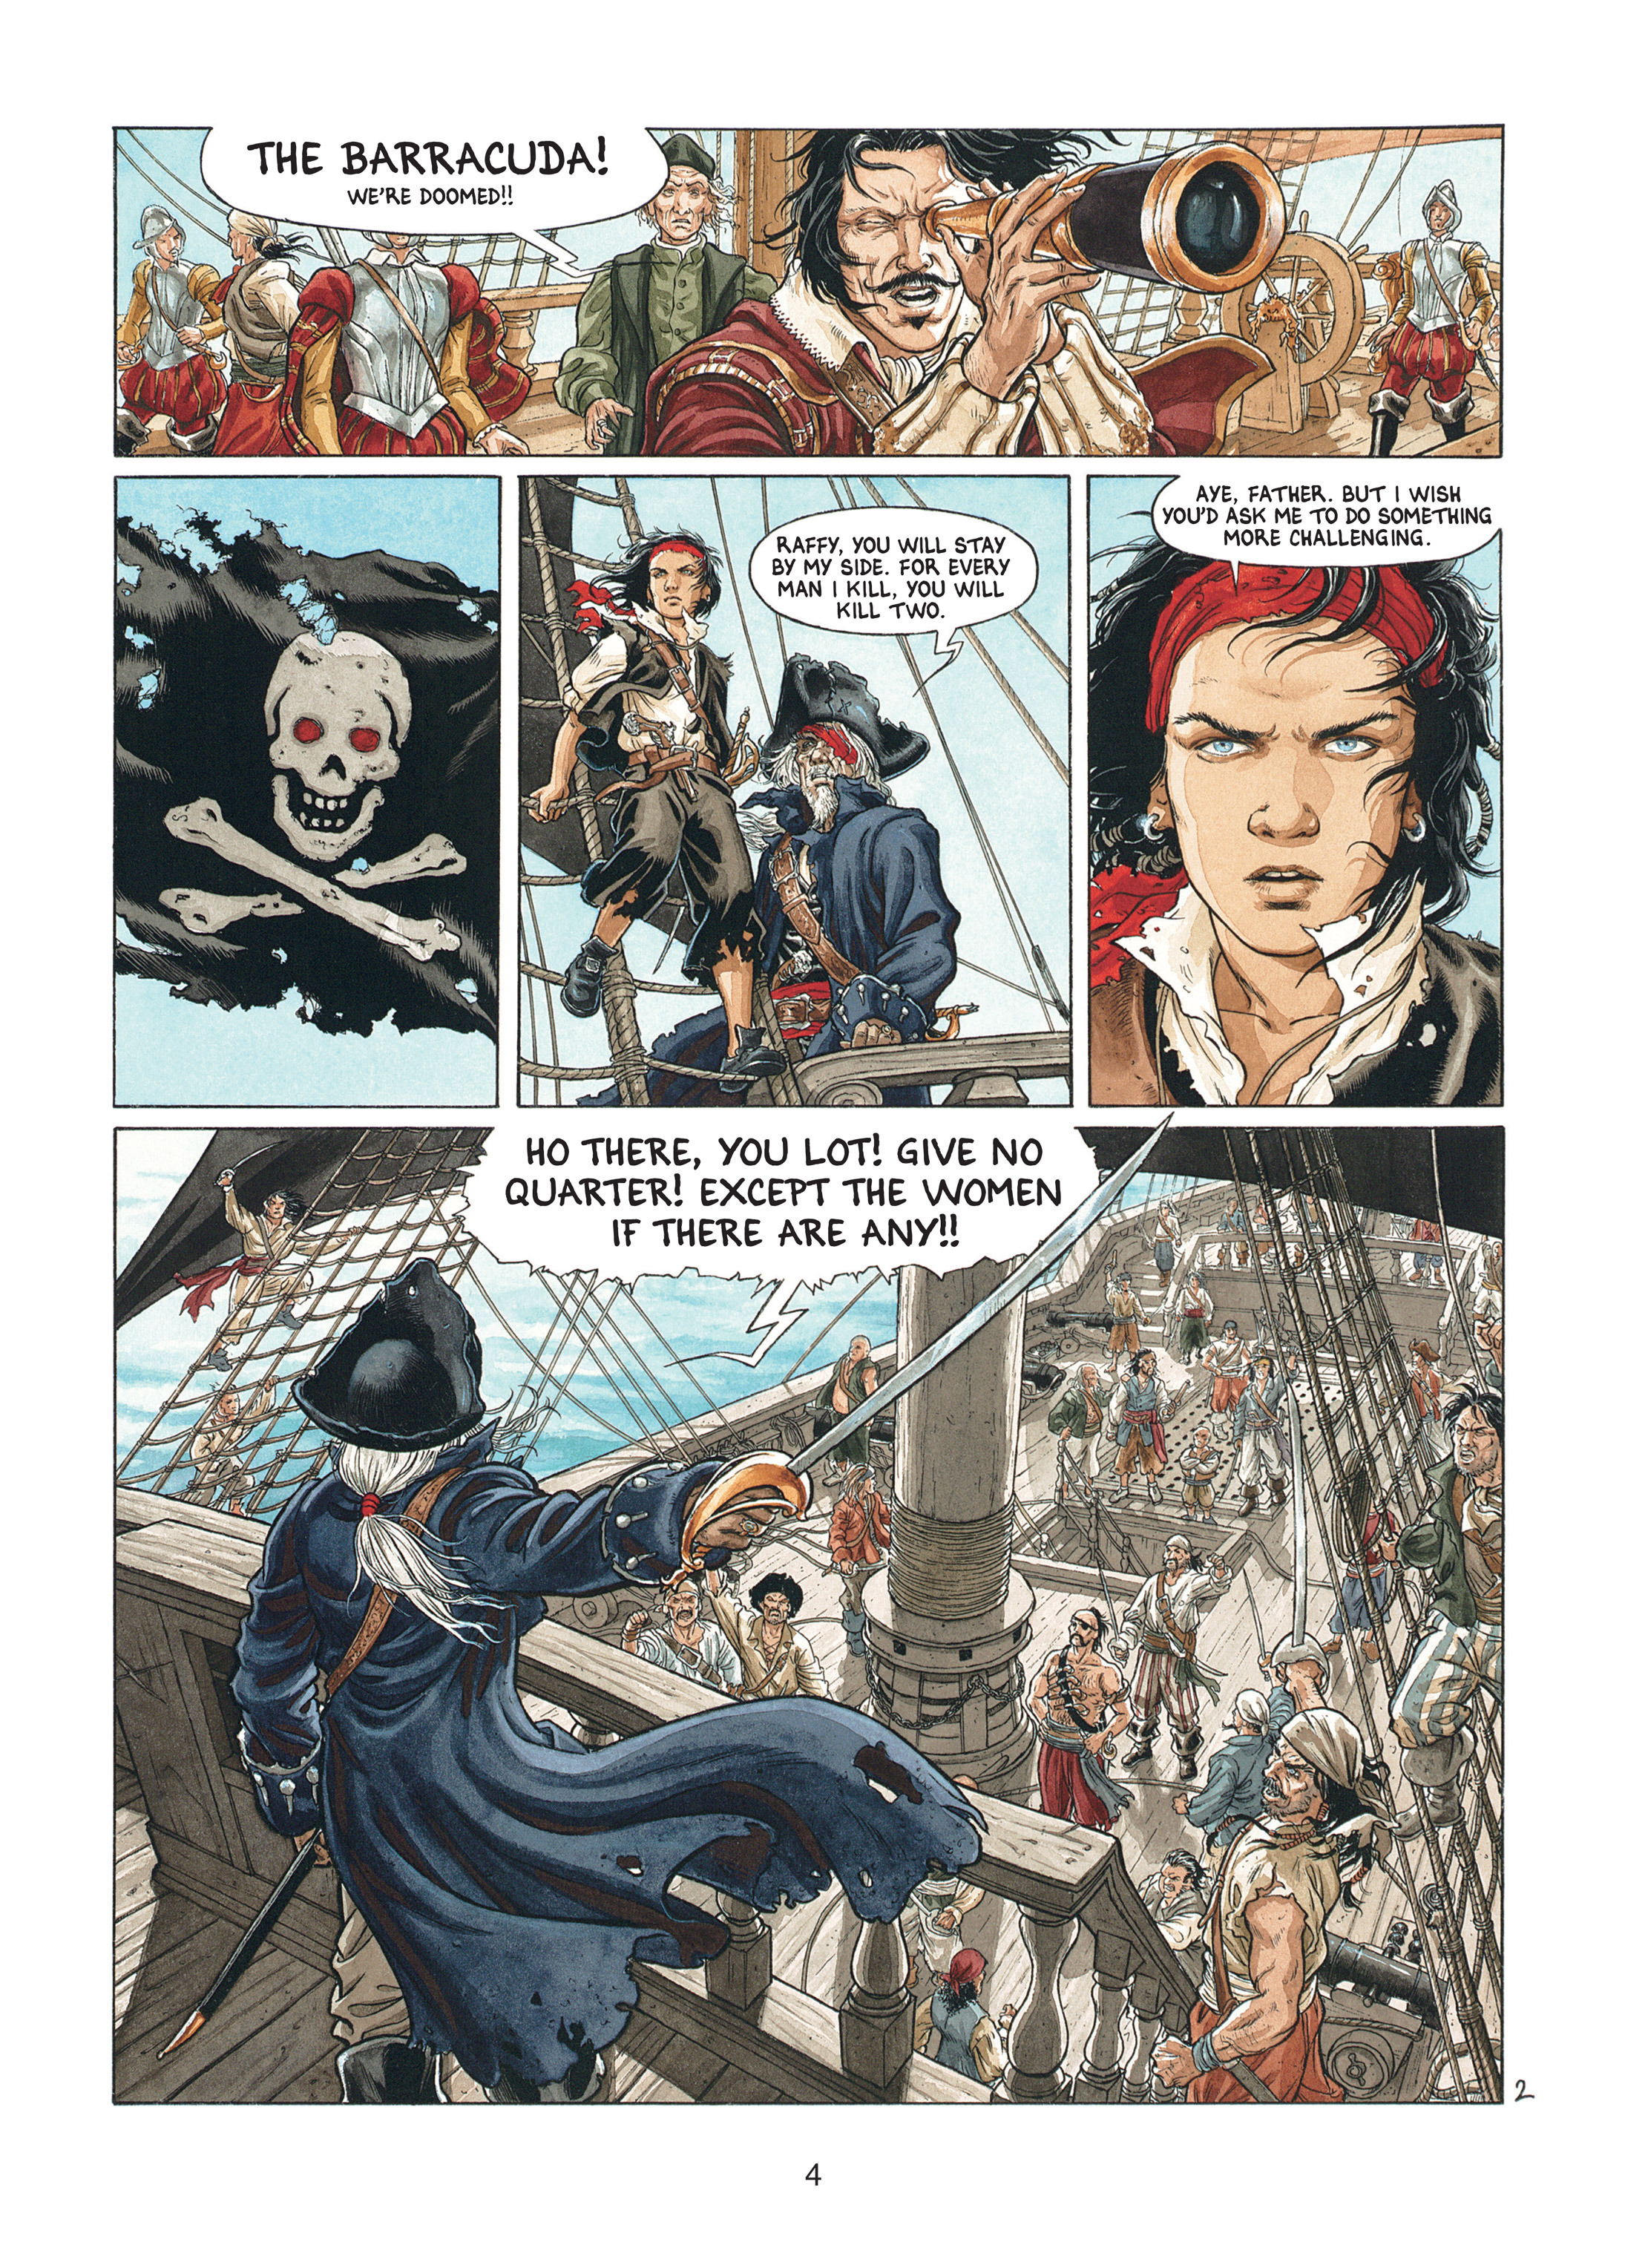 Read online Barracuda comic -  Issue #1 - 4